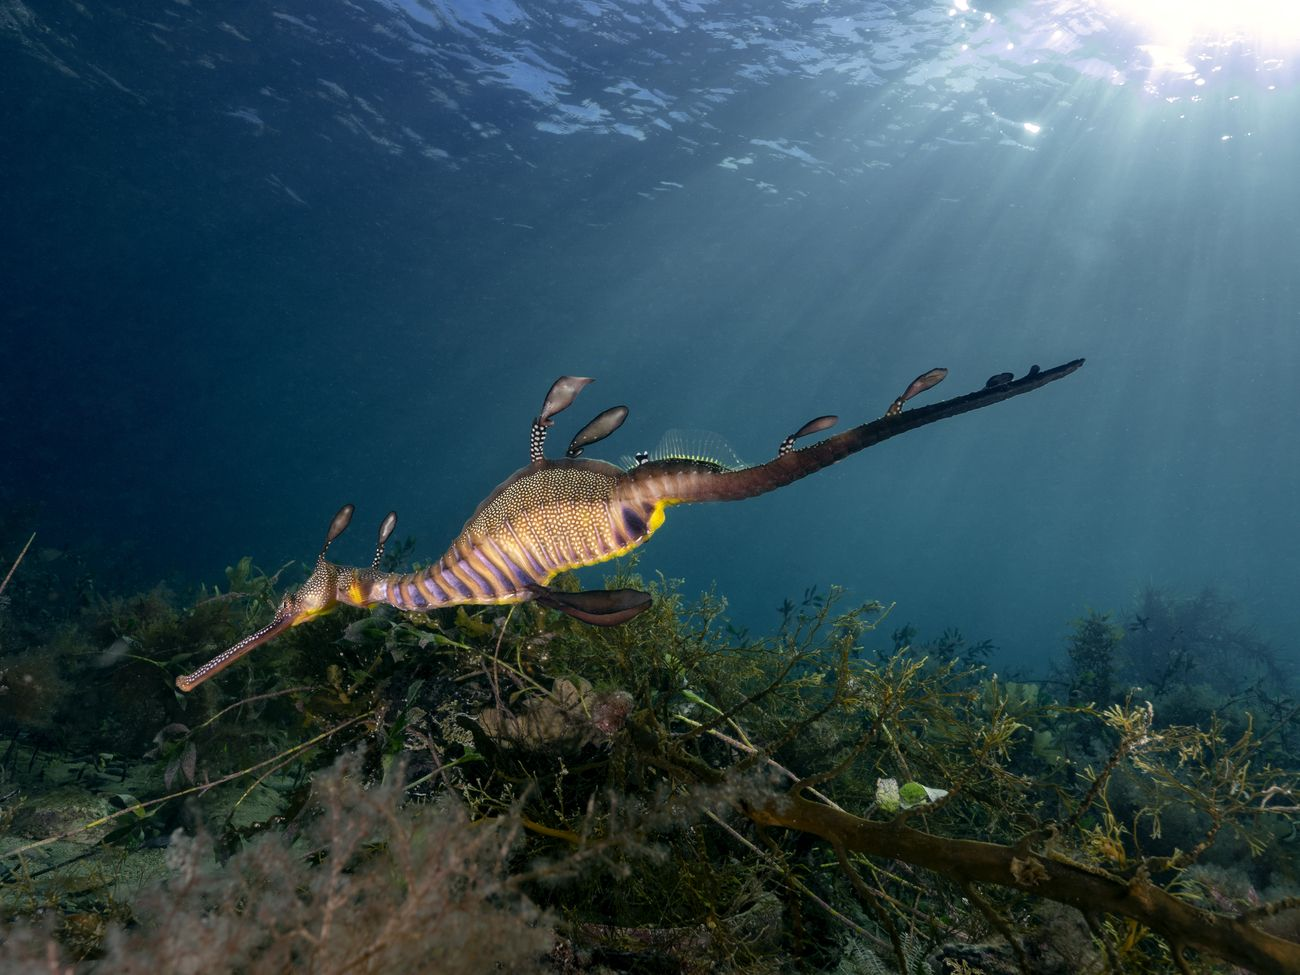 weedy sea dragon from Flinders Pier Victoria Australia. I wanted to play around with different ways to get light rays to work with the sea dragon. I feel this is the nicer angle